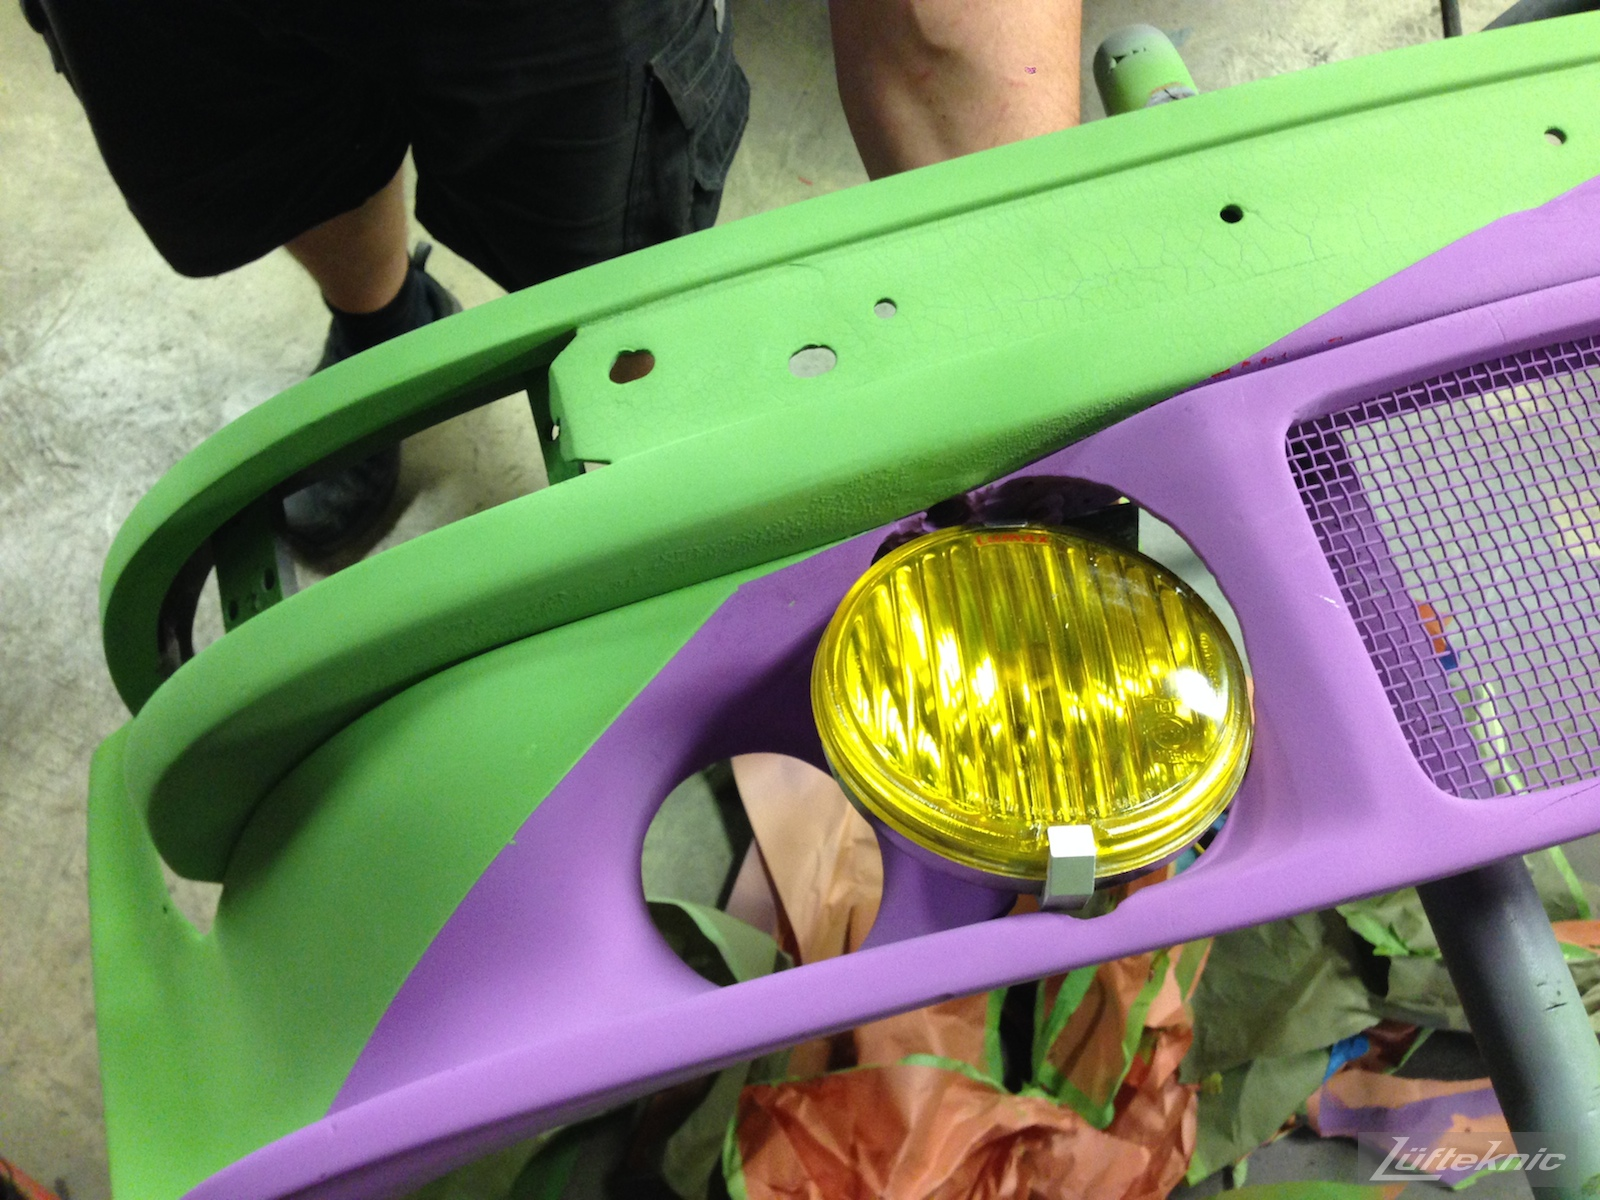 Lüfteknic #projectstuka Porsche 930 Turbo bumper with yellow fog light held in place.